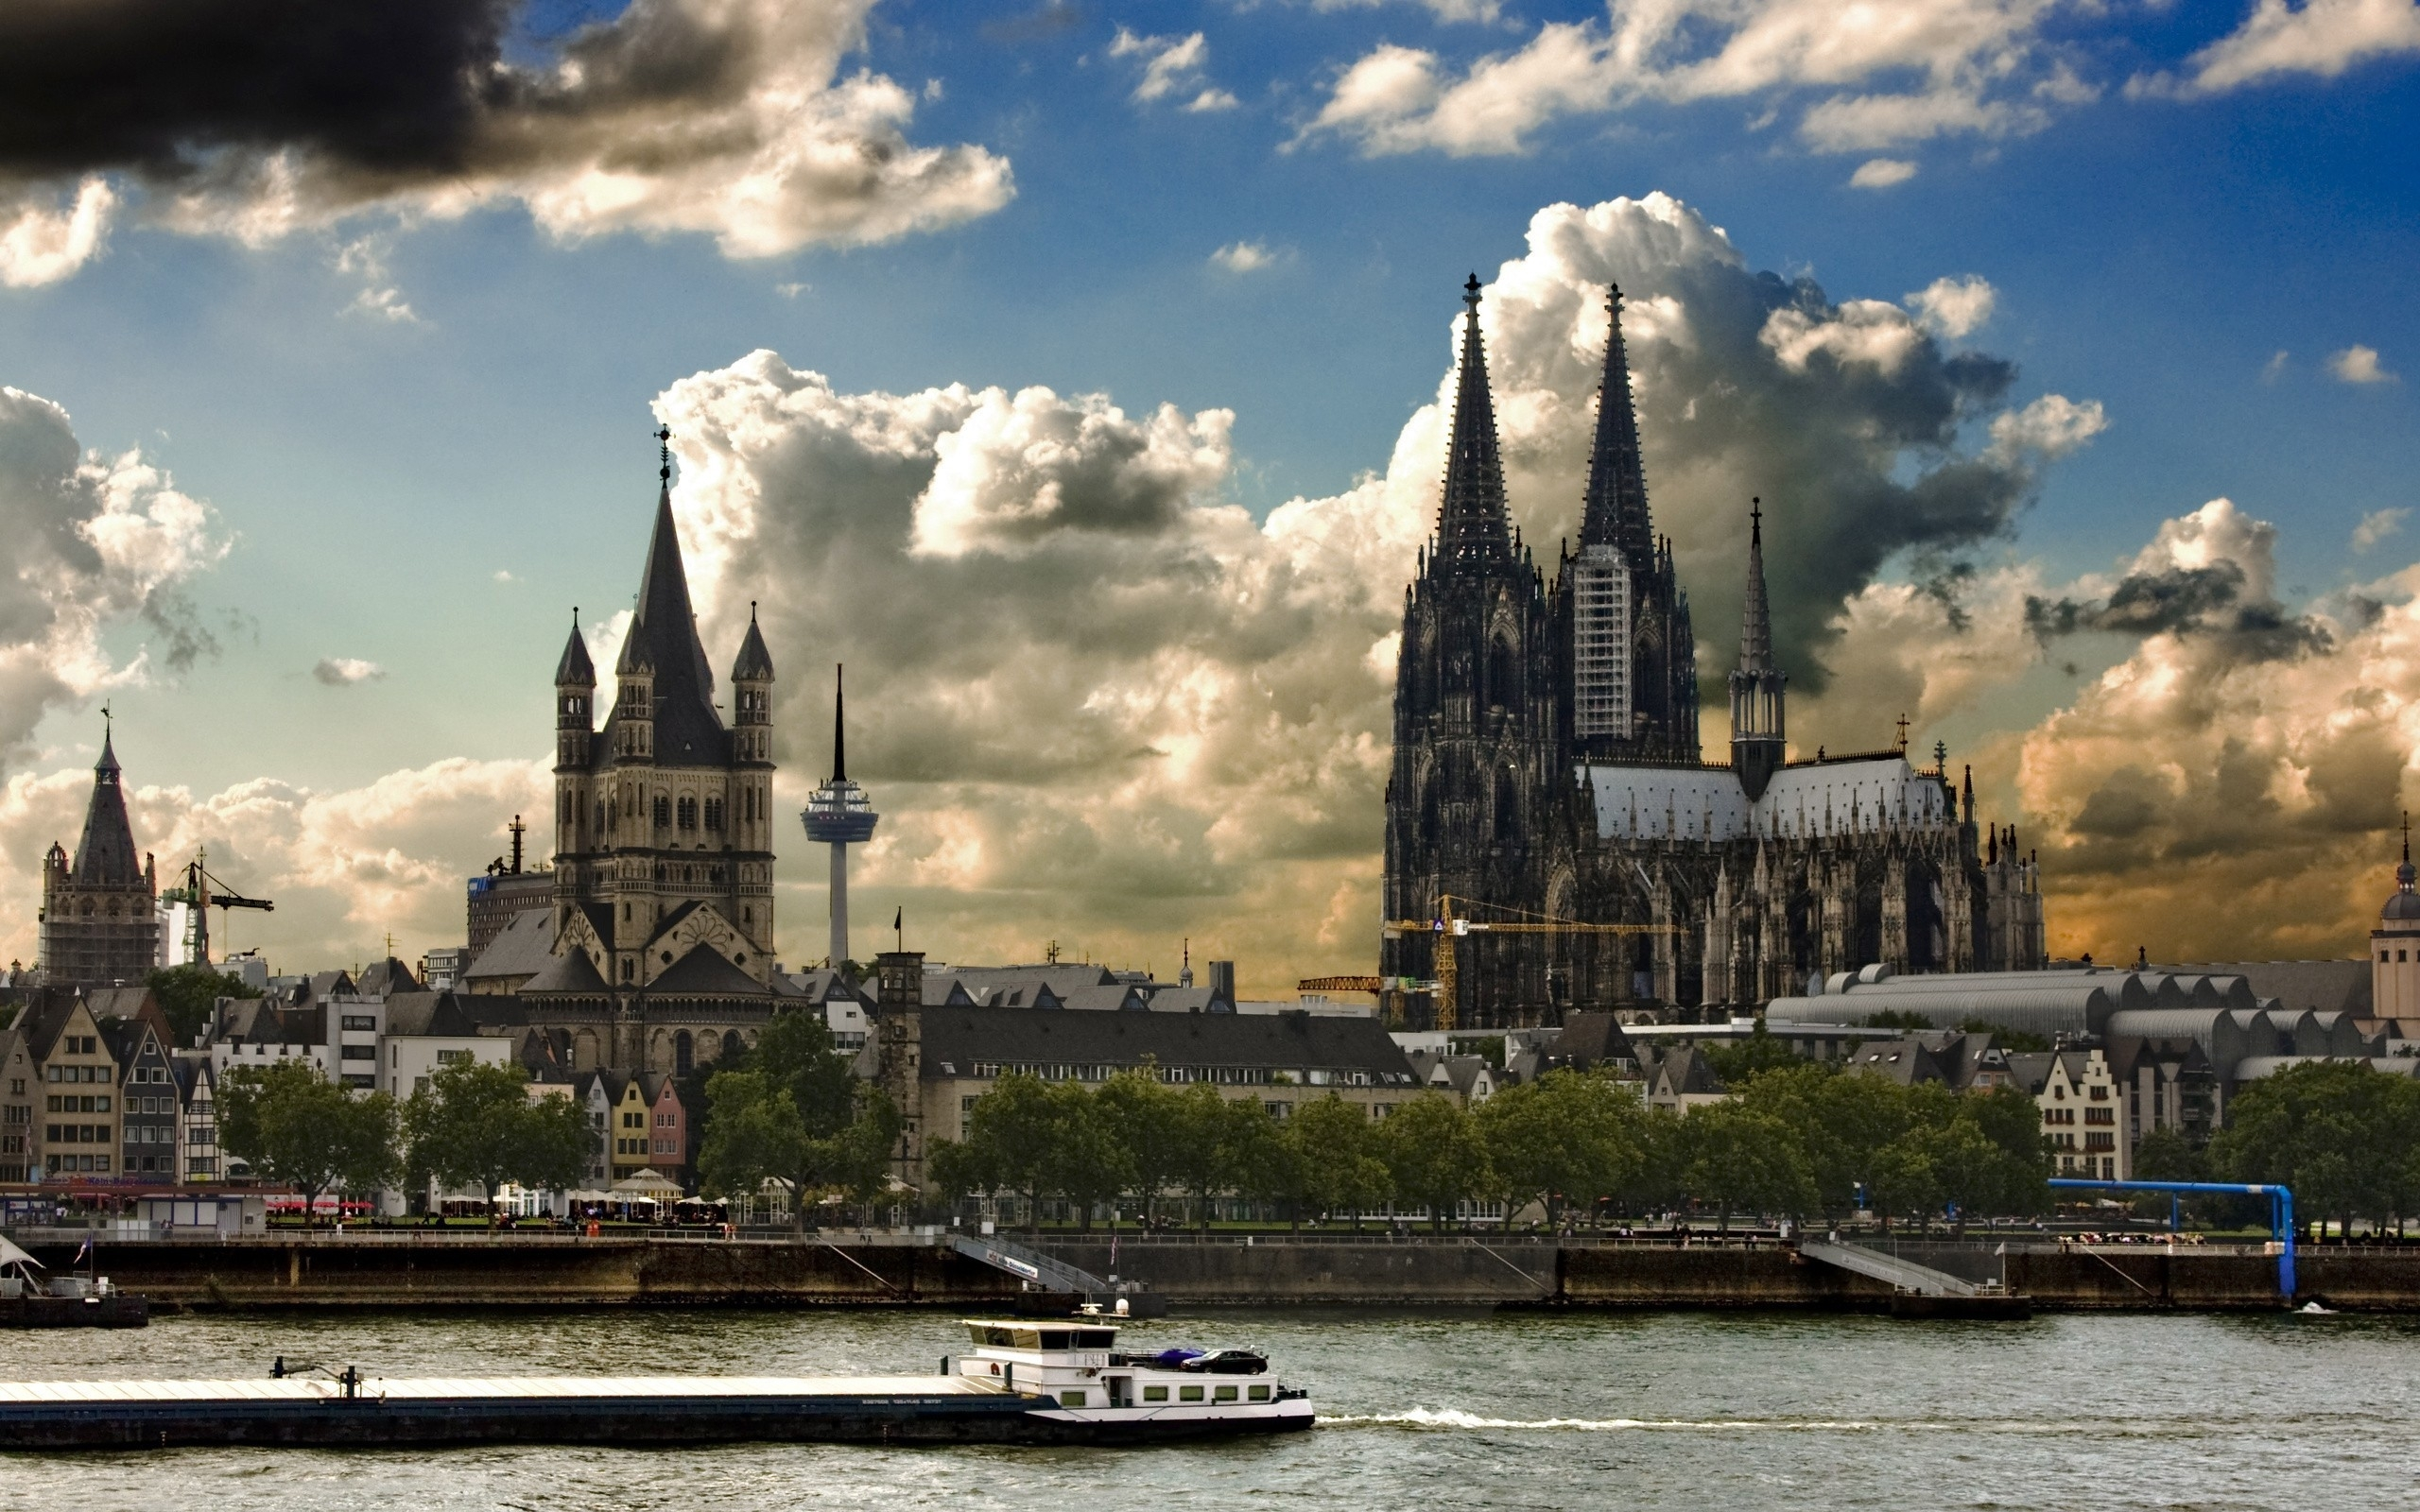 Cologne Cathedral Germany Wallpapers   2560x1600   2267030 2560x1600